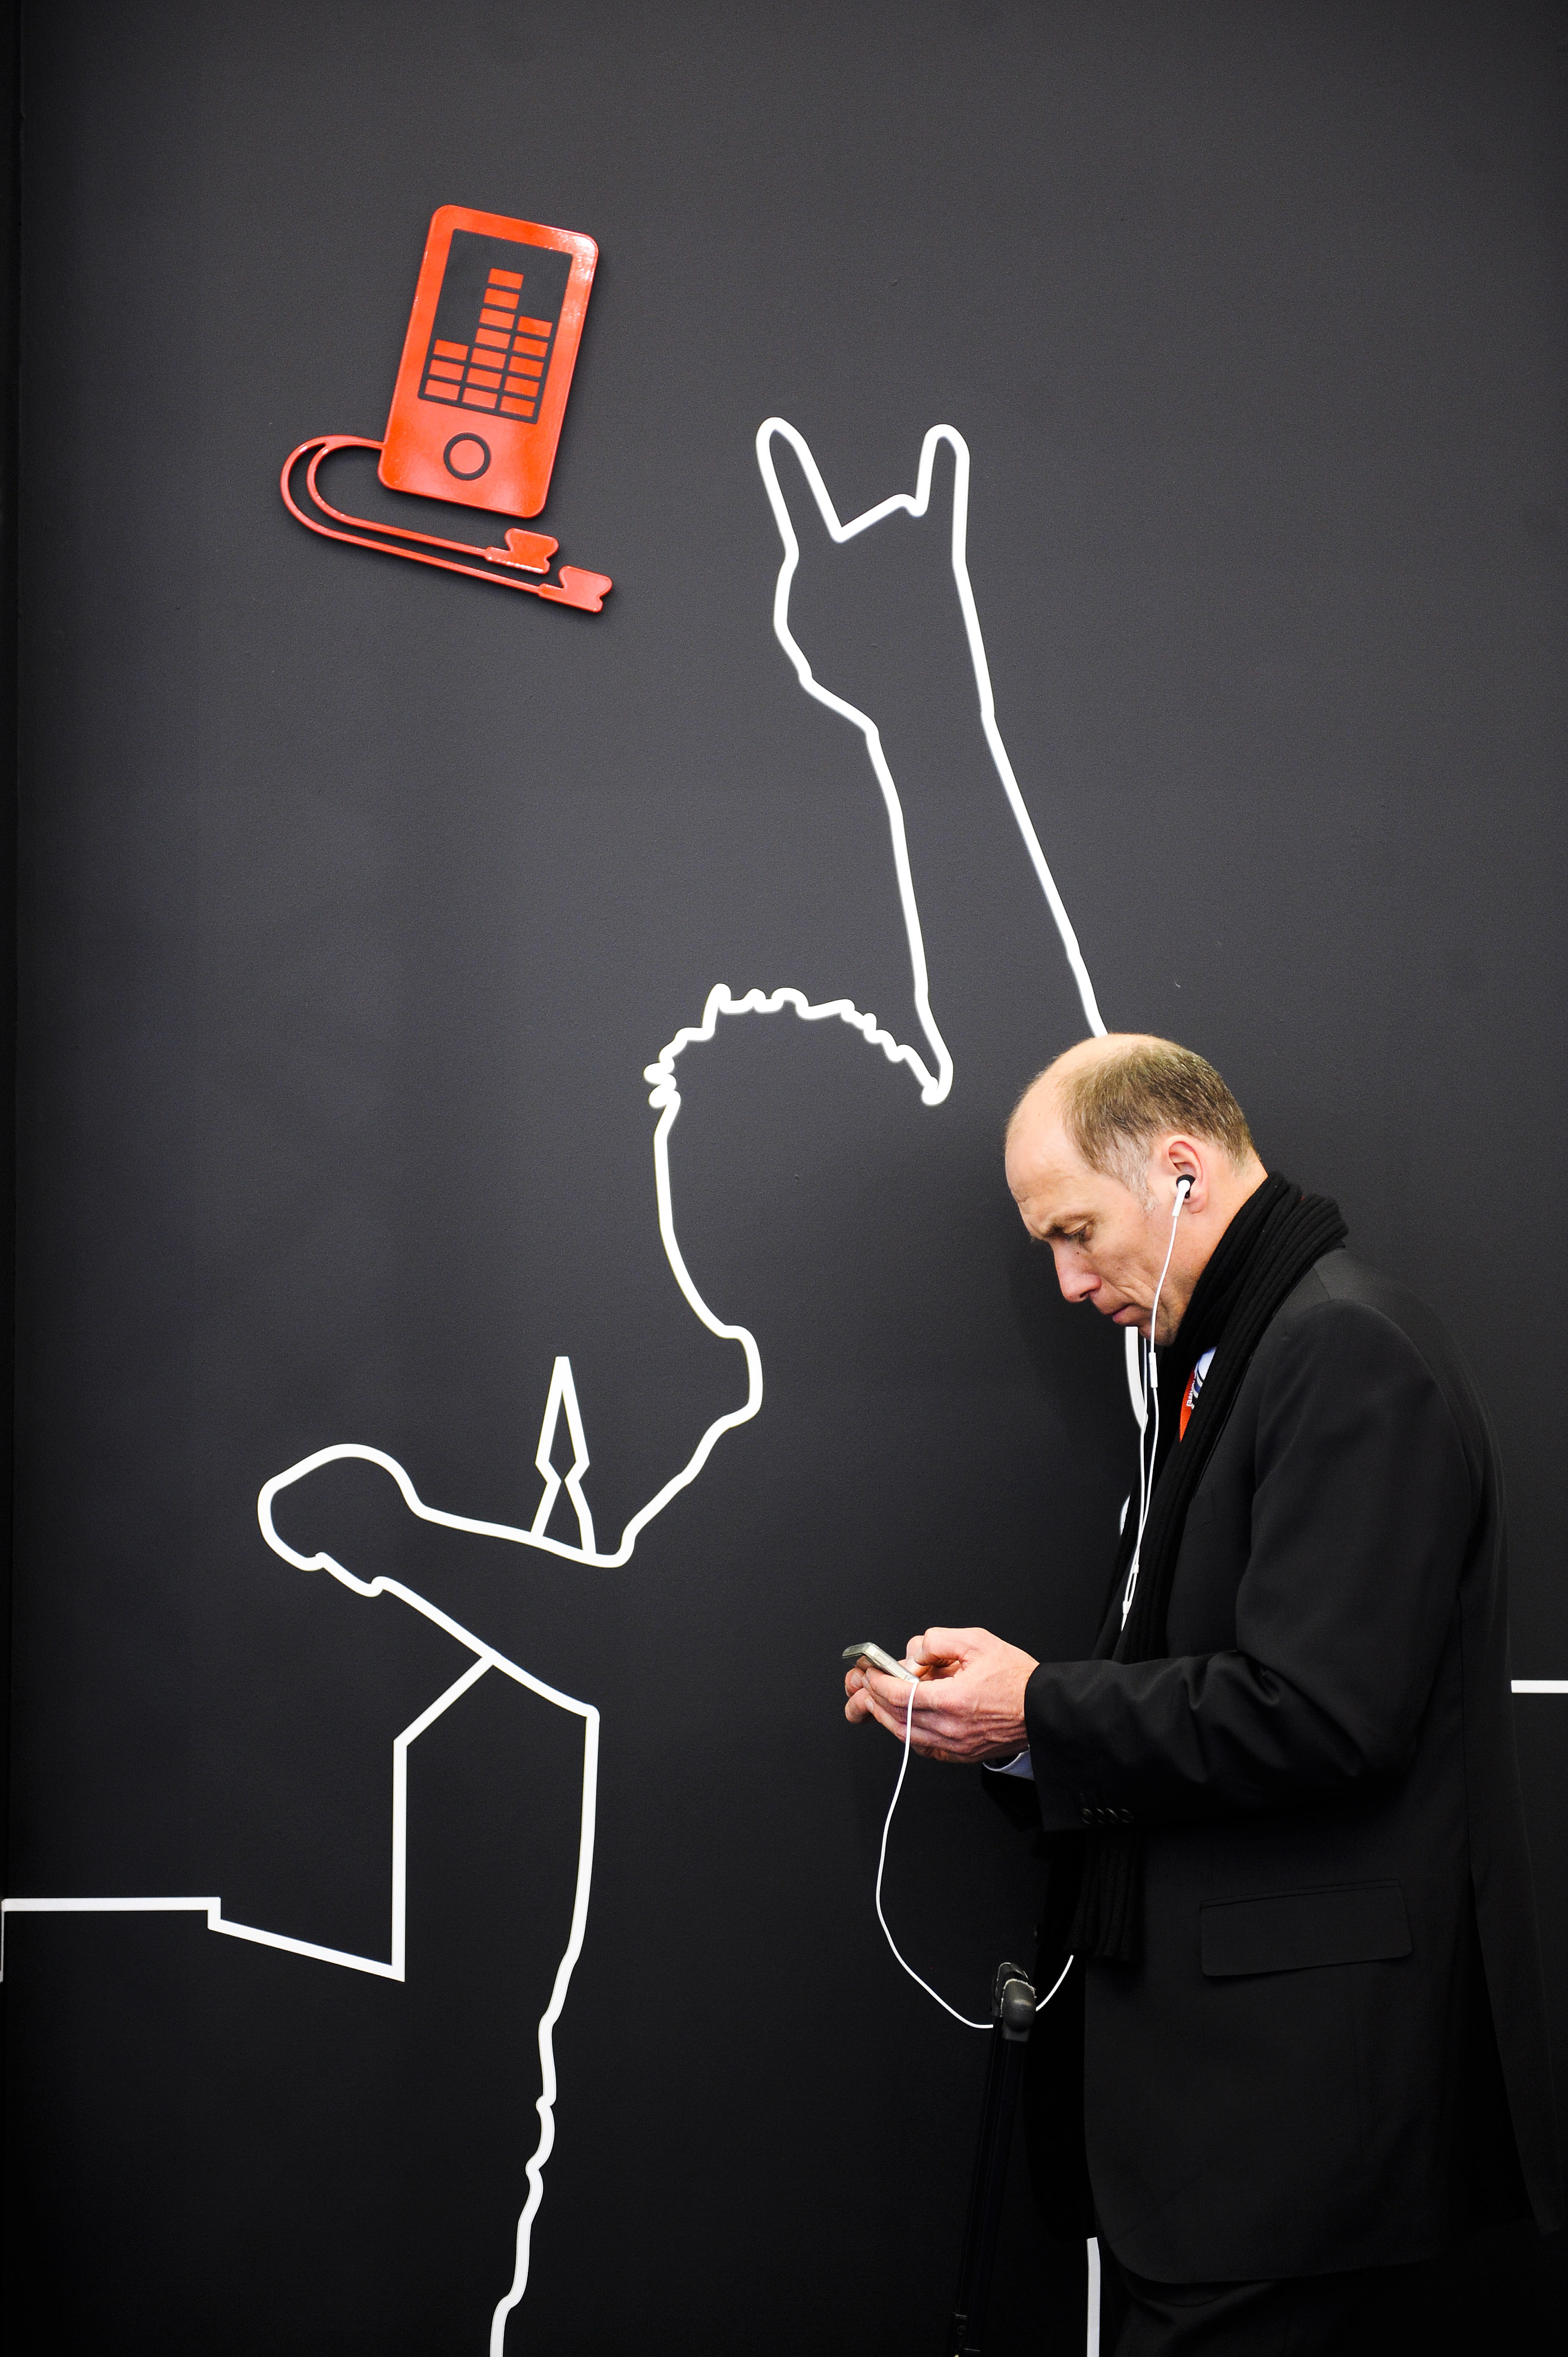 A visitor checks his mobile phone as he attends the 1st day of Mobile World Congress on February 14, 2011 in Barcelona, Spain. The Mobile World Congress hosts some of the world